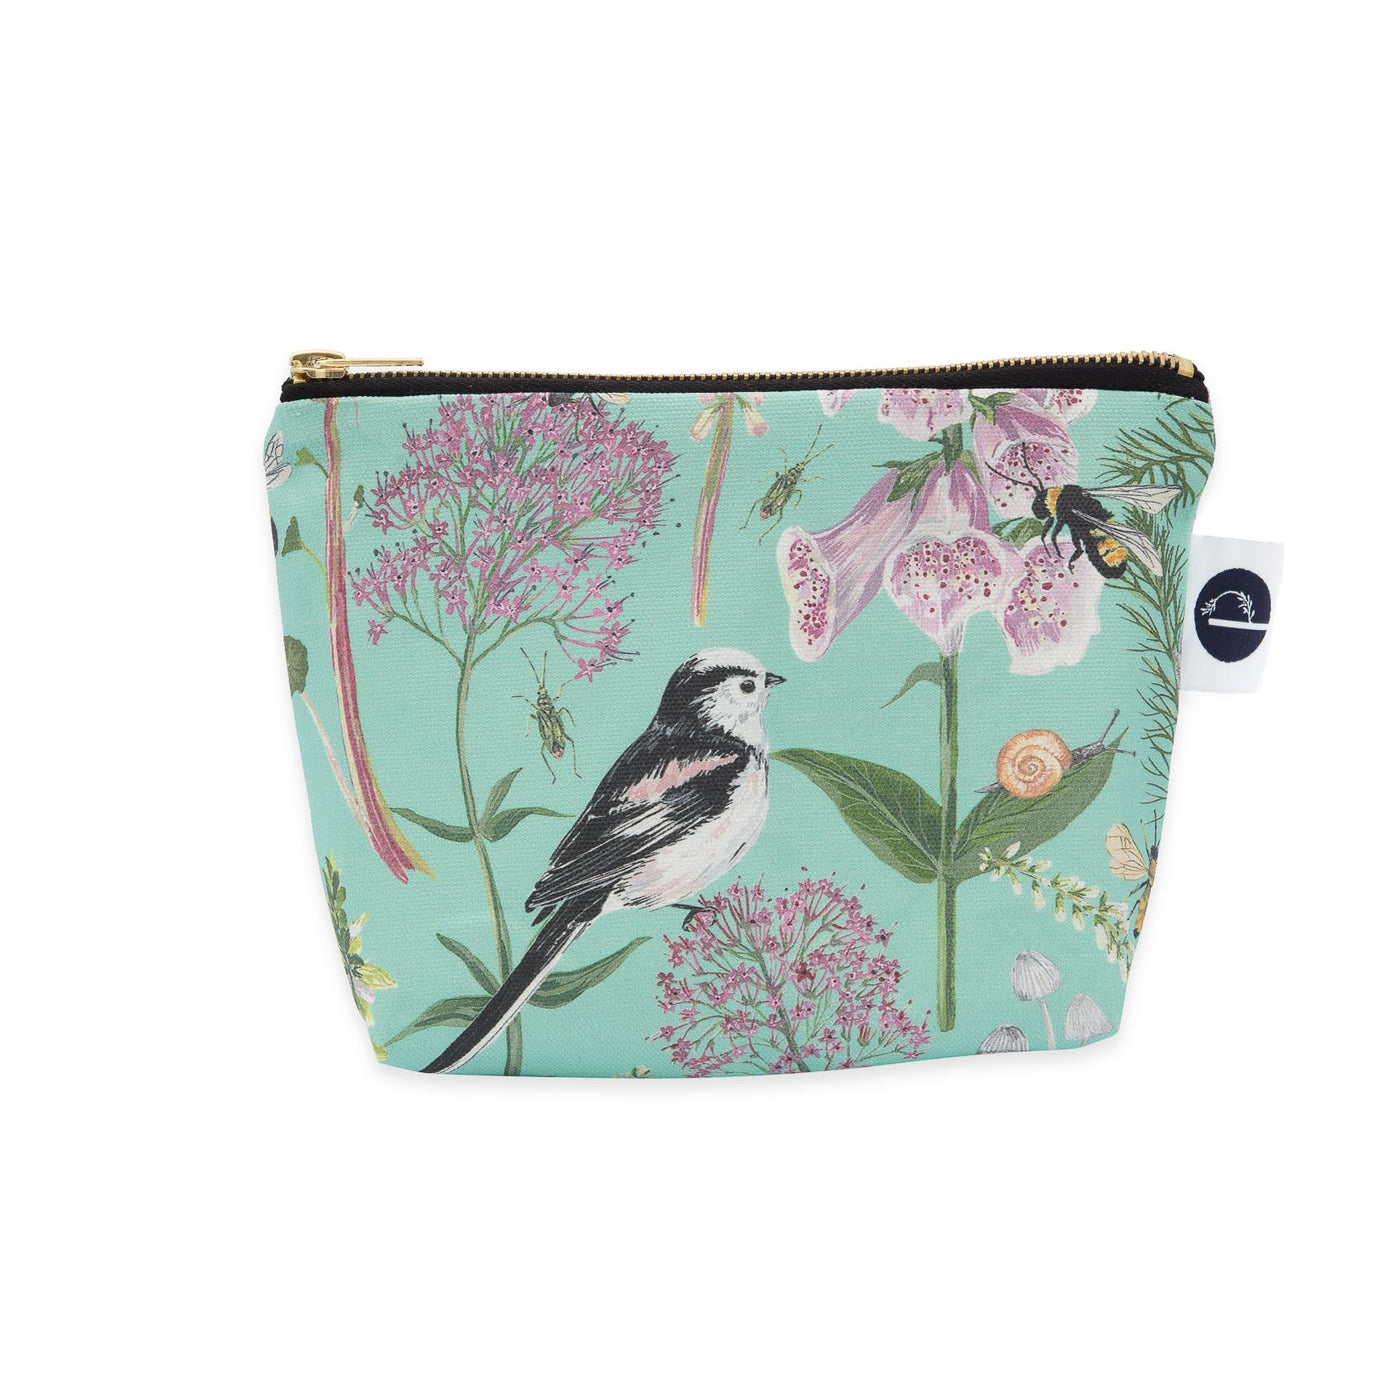 Longtail and Foxglove Small Make-up Bag - Turquoise